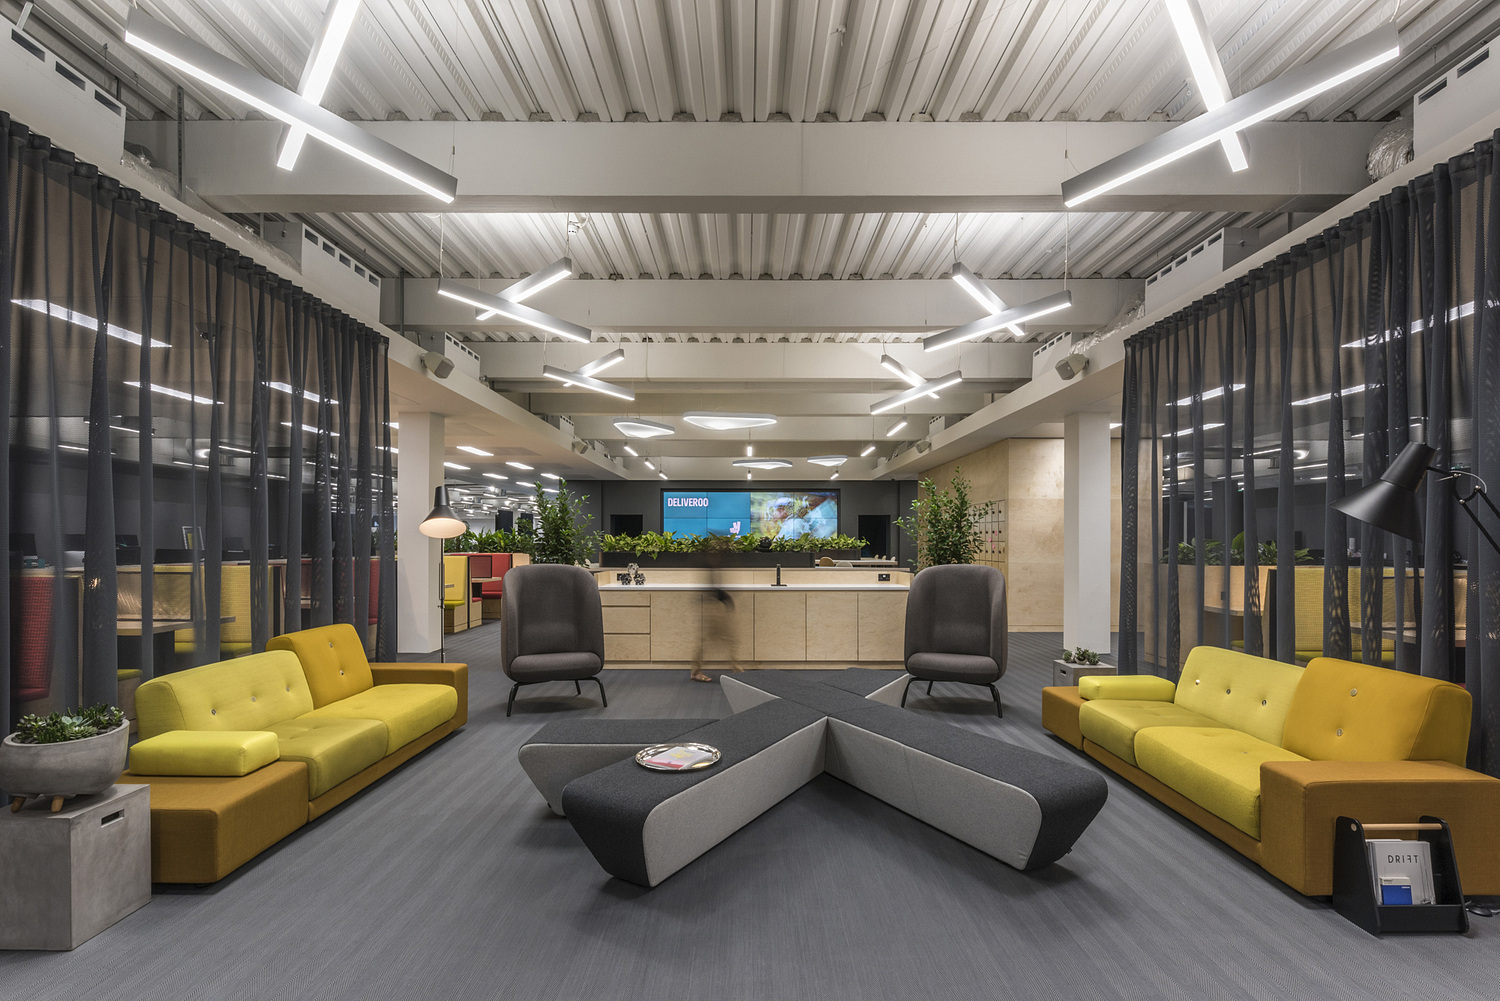 Reception seating area, Deliveroo offices, London